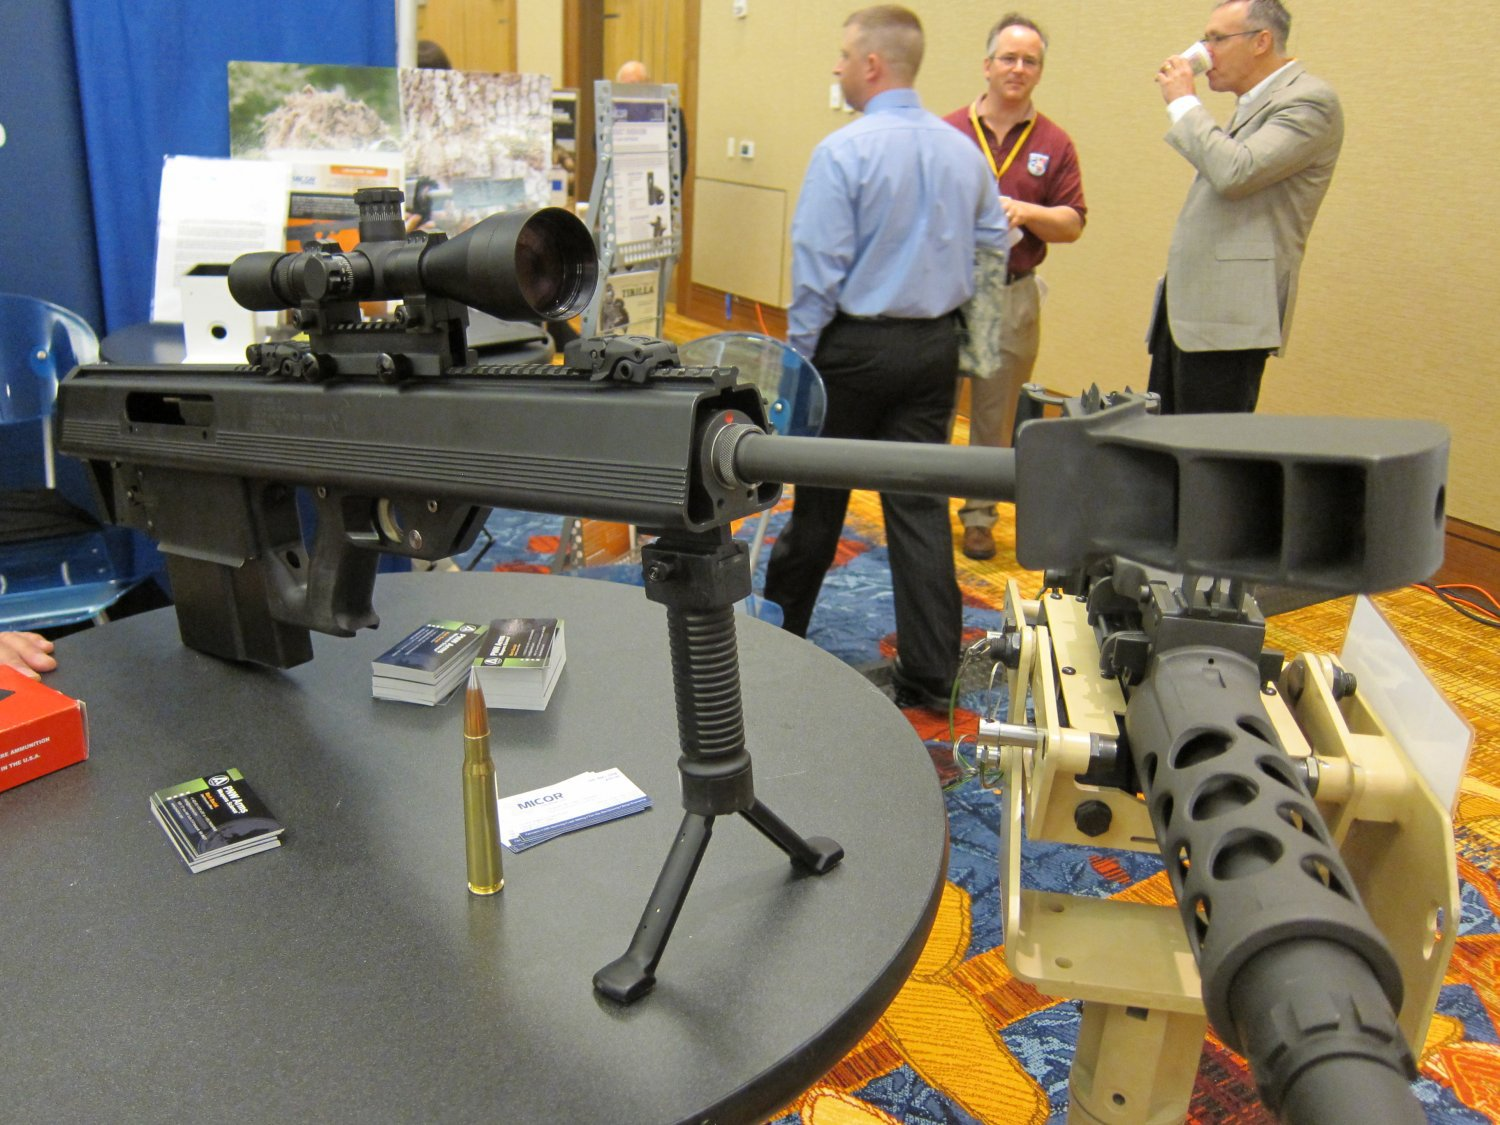 <!--:en-->MICOR Defense Leader 50 Ultra-Compact, Lightweight Bullpup Semi-Auto .50 BMG (12.7x99mm NATO) Sniper/Anti-Materiel Rifle and PNW Arms Weapons Science .50BMG Ammo at NDIA Infantry Small Arms Systems Symposium 2011: Potential Long-Range Lethality Game-Changer Combo for 21st Century Infantry Warfare (Photos and Video!)<!--:-->